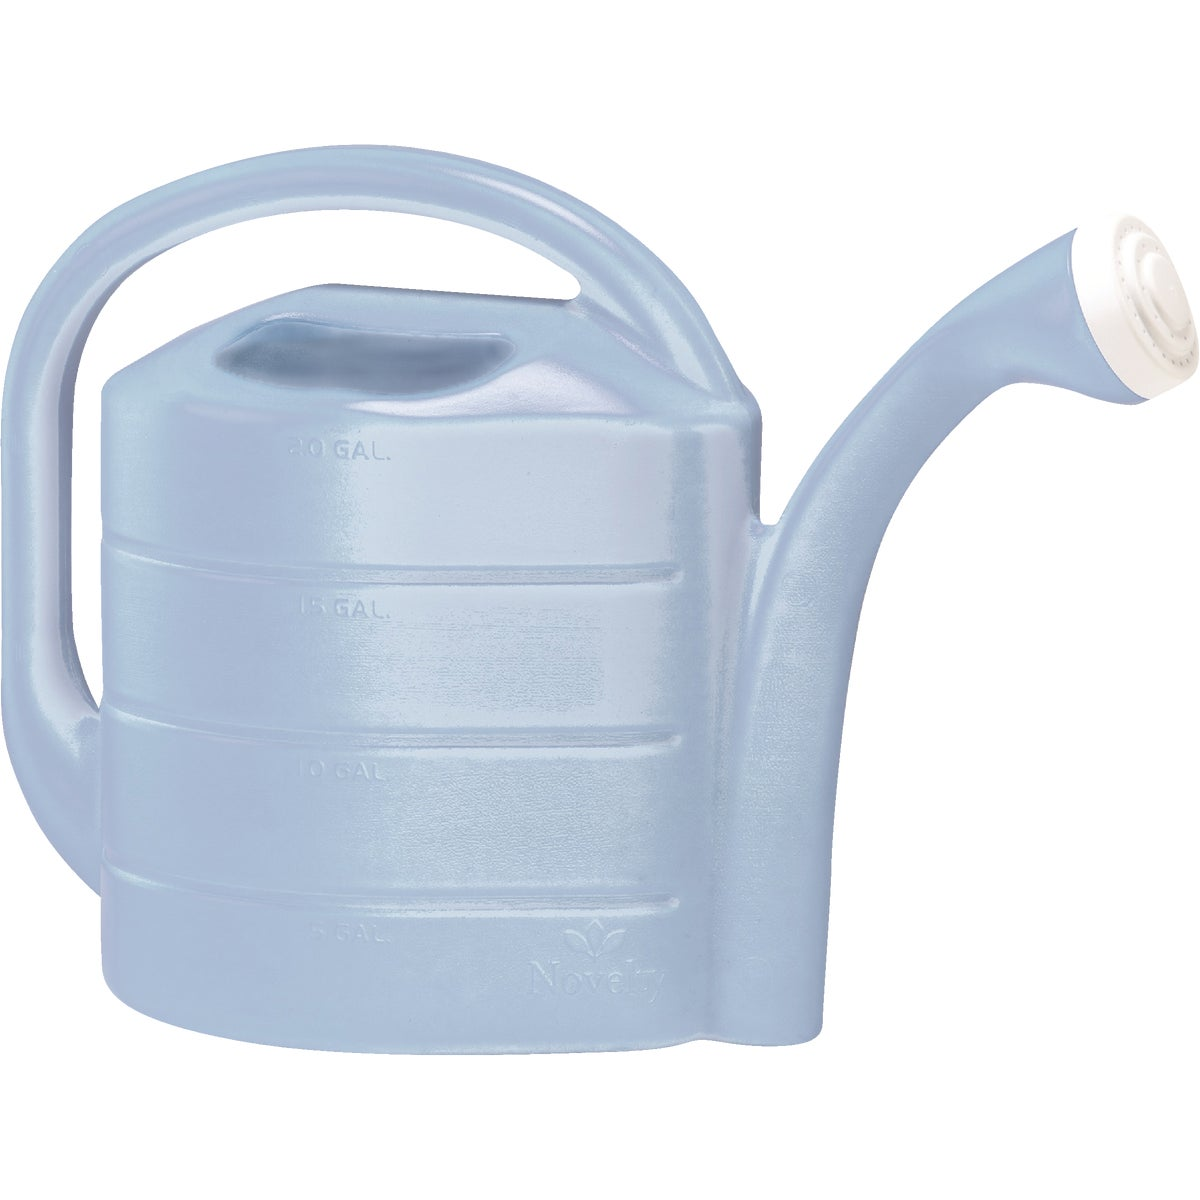 2GL BL POLY WATERING CAN - 30409 by Novelty Mfg Co